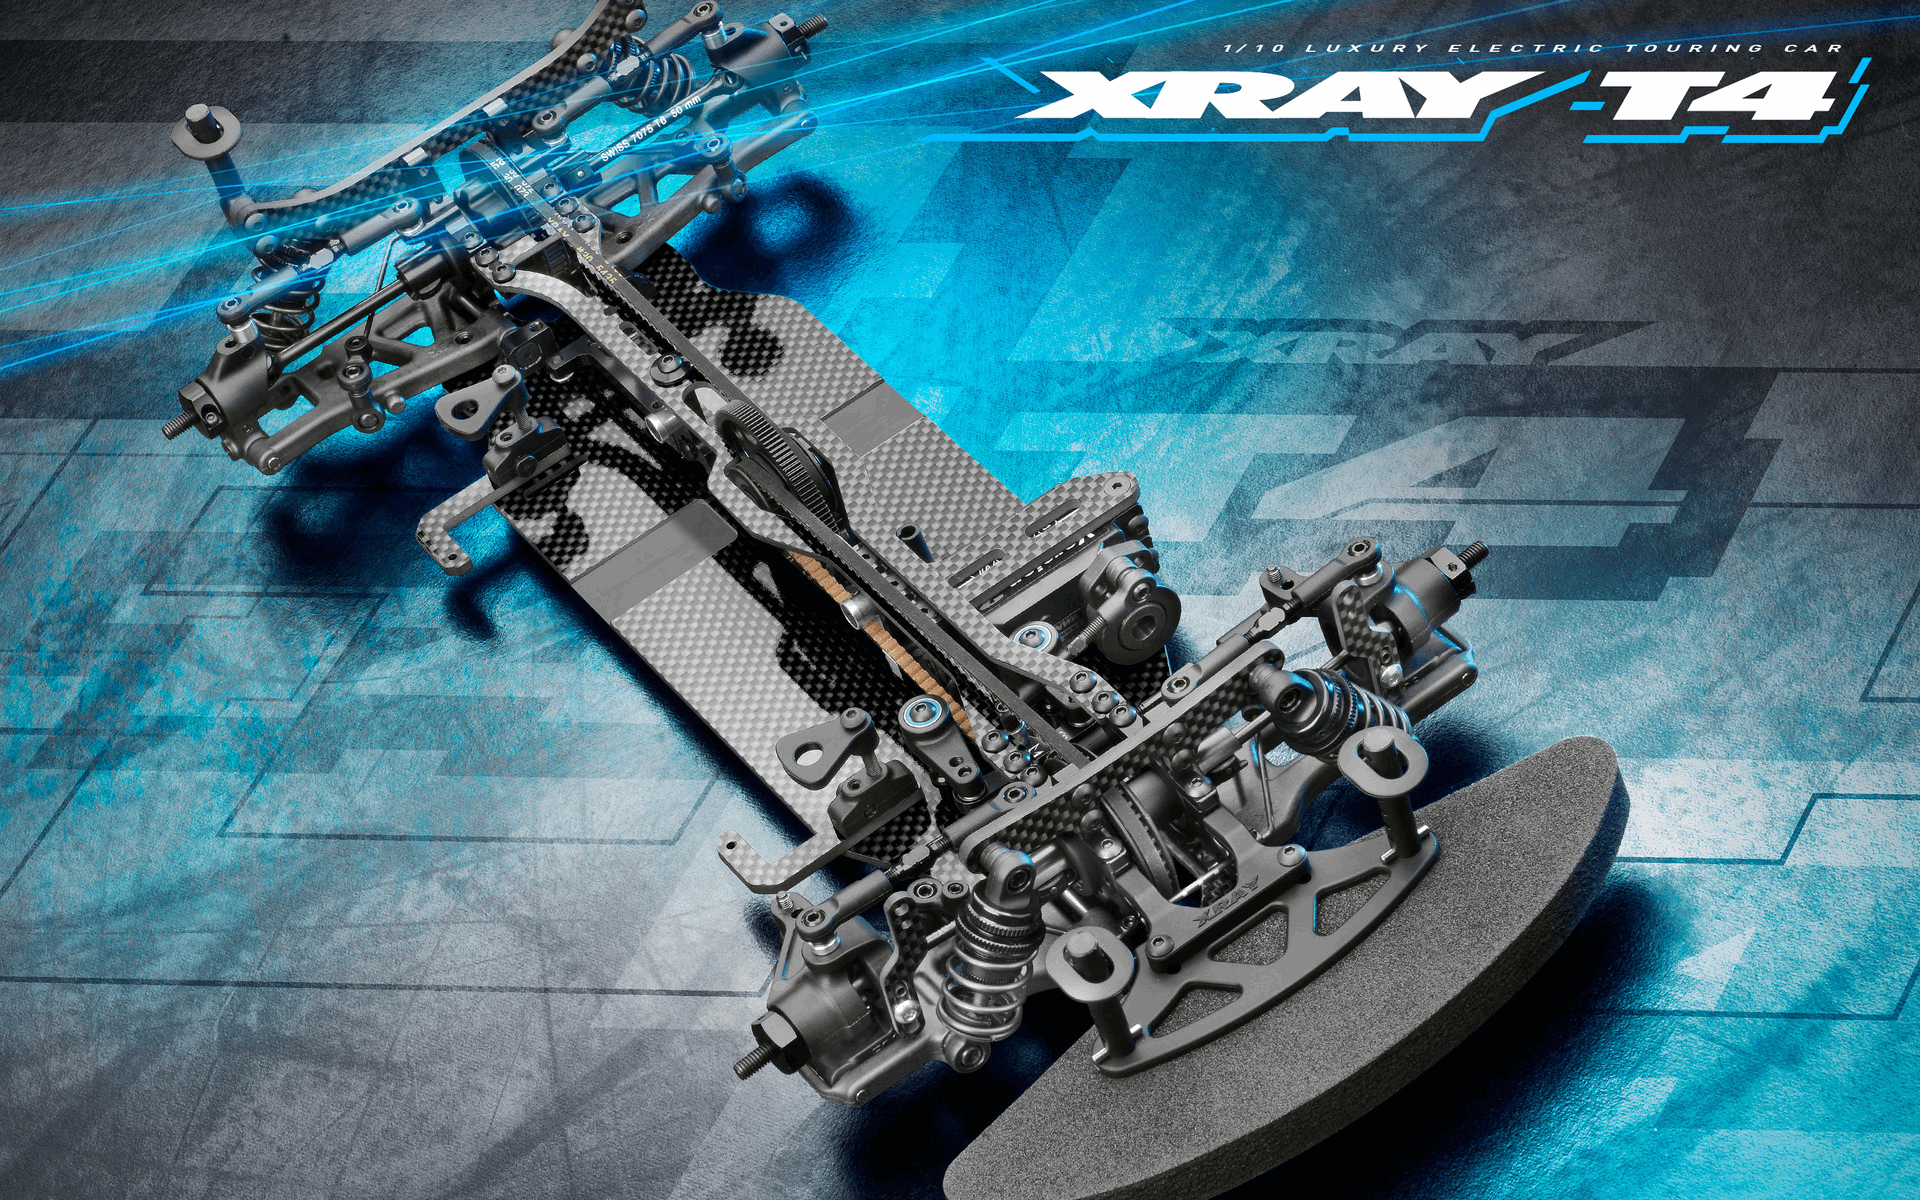 XRAY T4 2021 Specs 1/10 Luxury Electric Touring Car - Graphite Edition